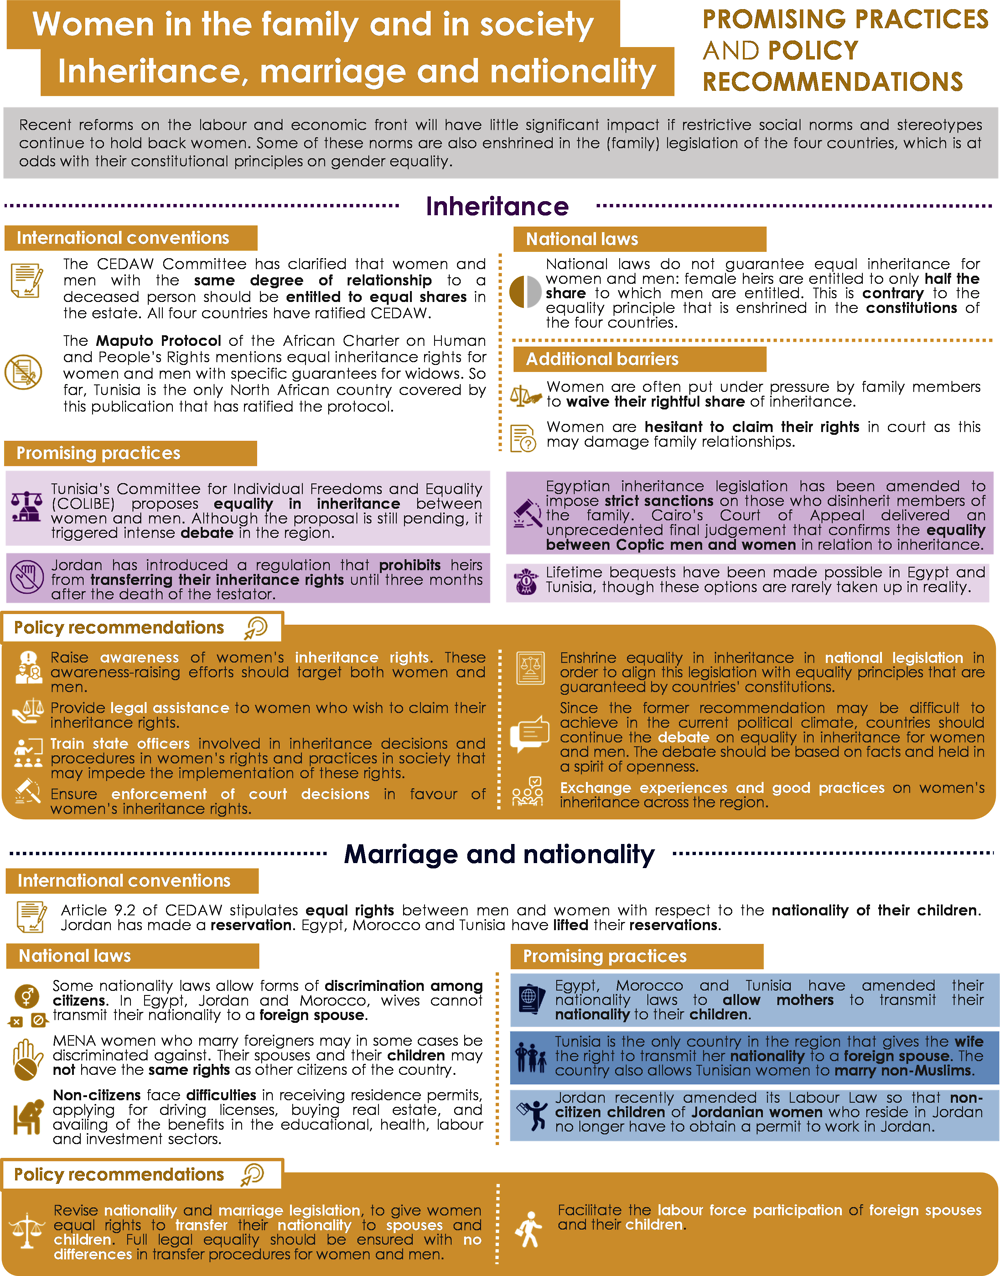 Infographic 4.1. Women in the family and society: inheritance, marriage and nationality